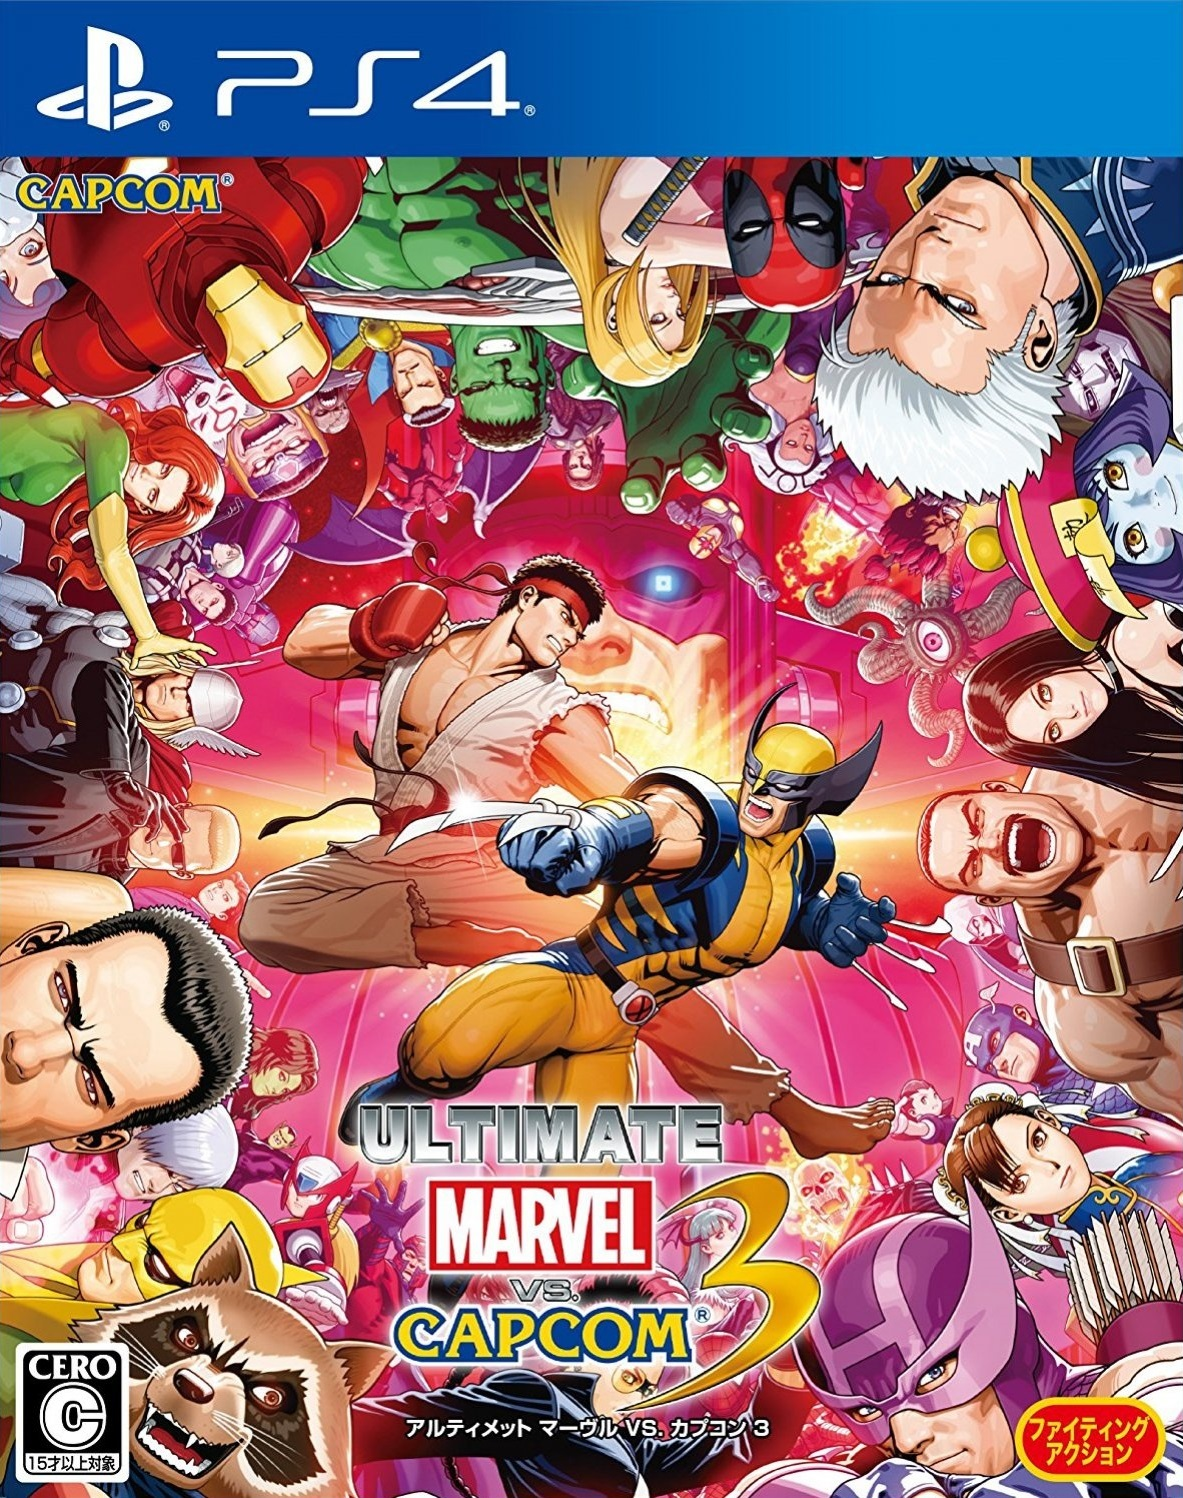 ultimate-marvel-vs-capcom-3-510441.2.jpg